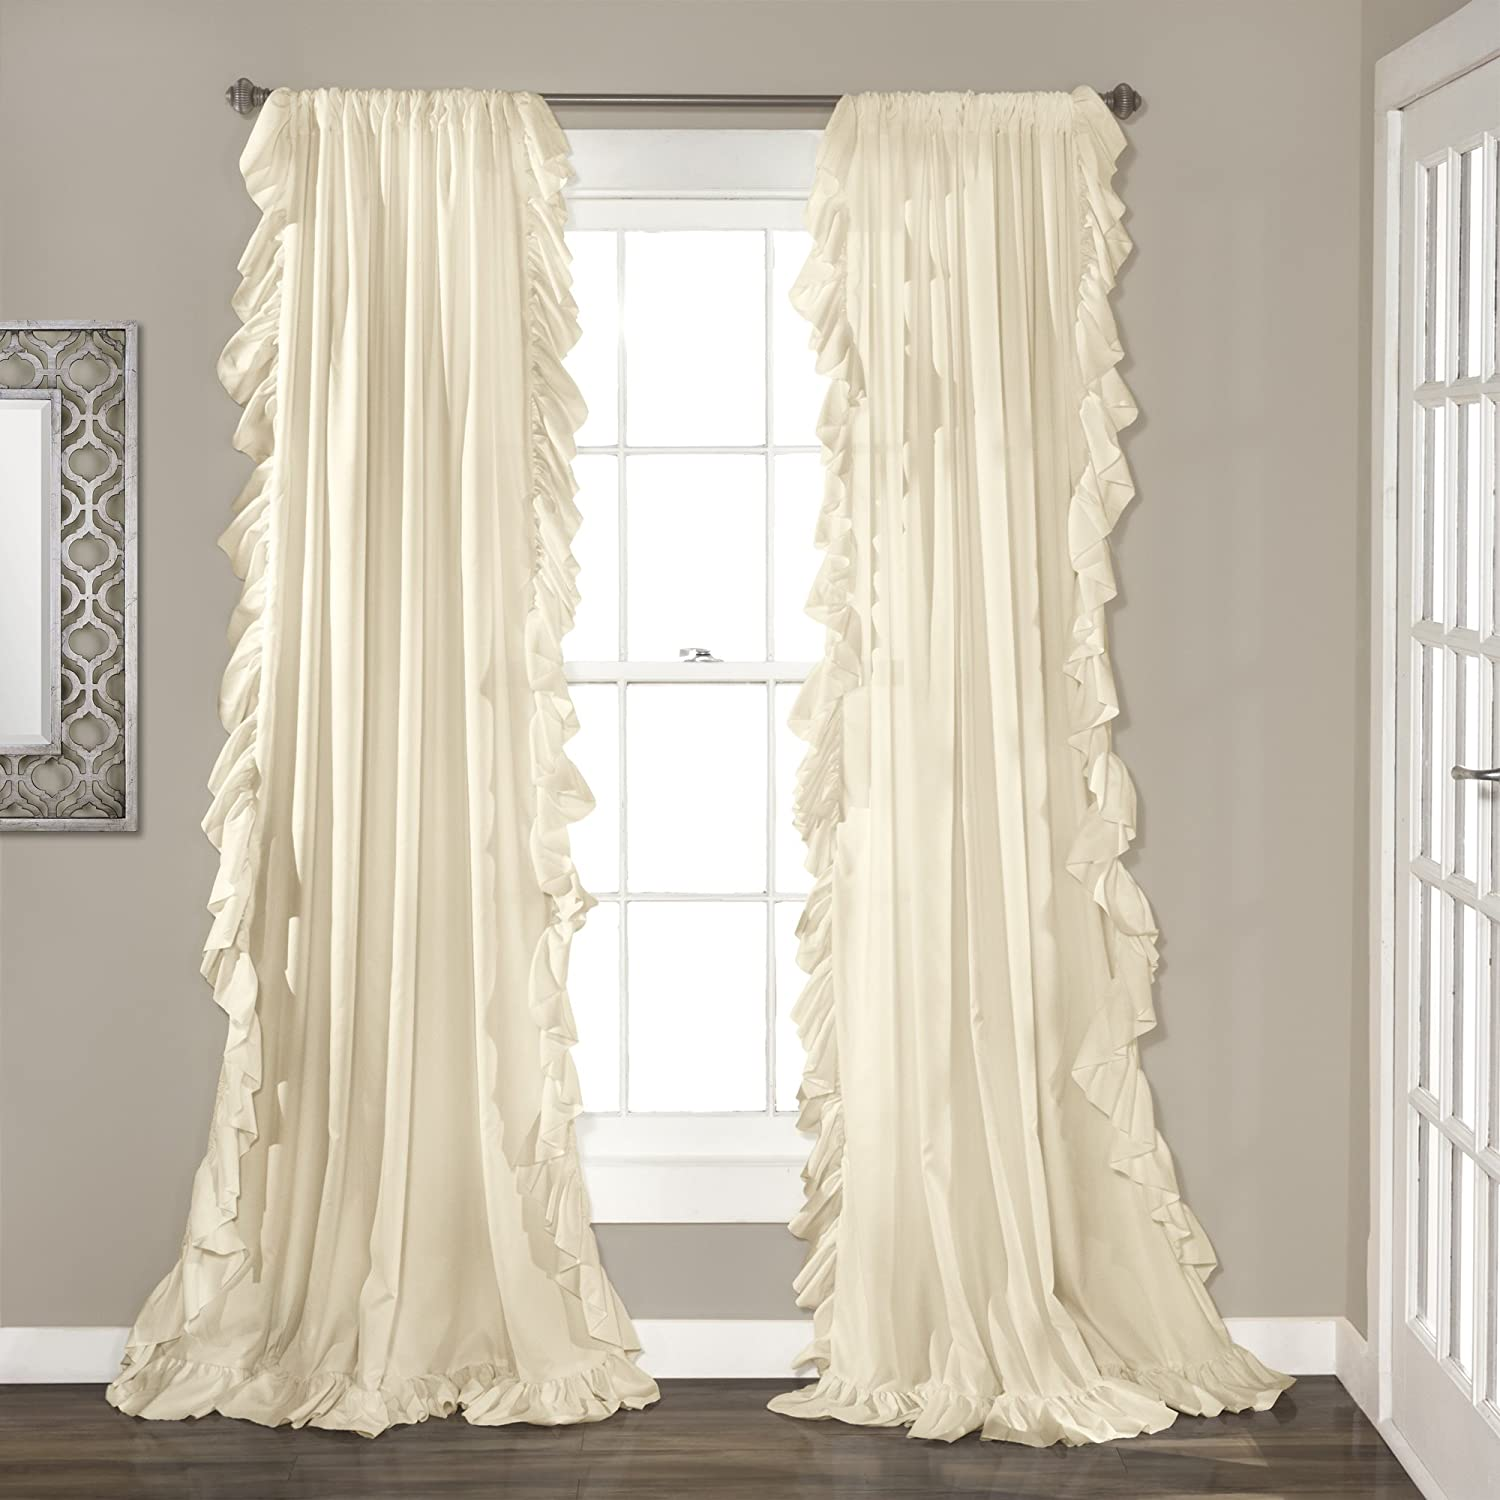 "Lush Decor Ivory Reyna Window Panel Curtain Set for Living, Dining Room, Bedroom (Pair), 108"" x 54"", 108"